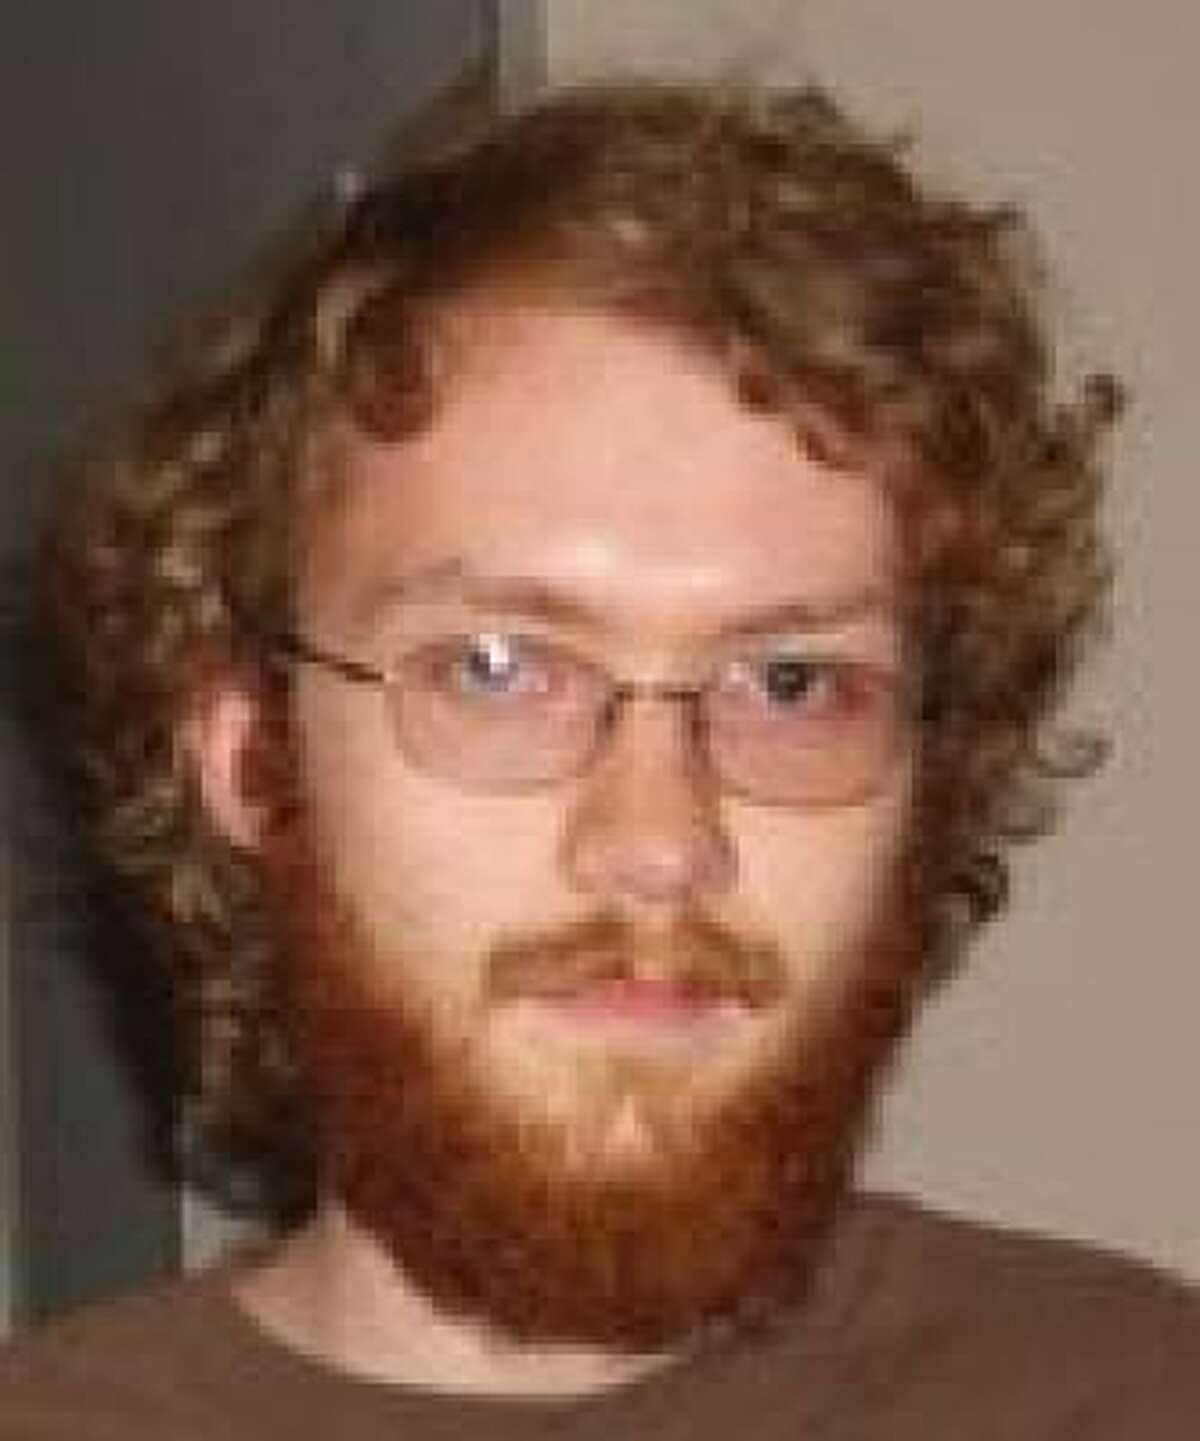 Matthew Wilson, the Rice student missing since Dec 14, looked much different when he left Texas.